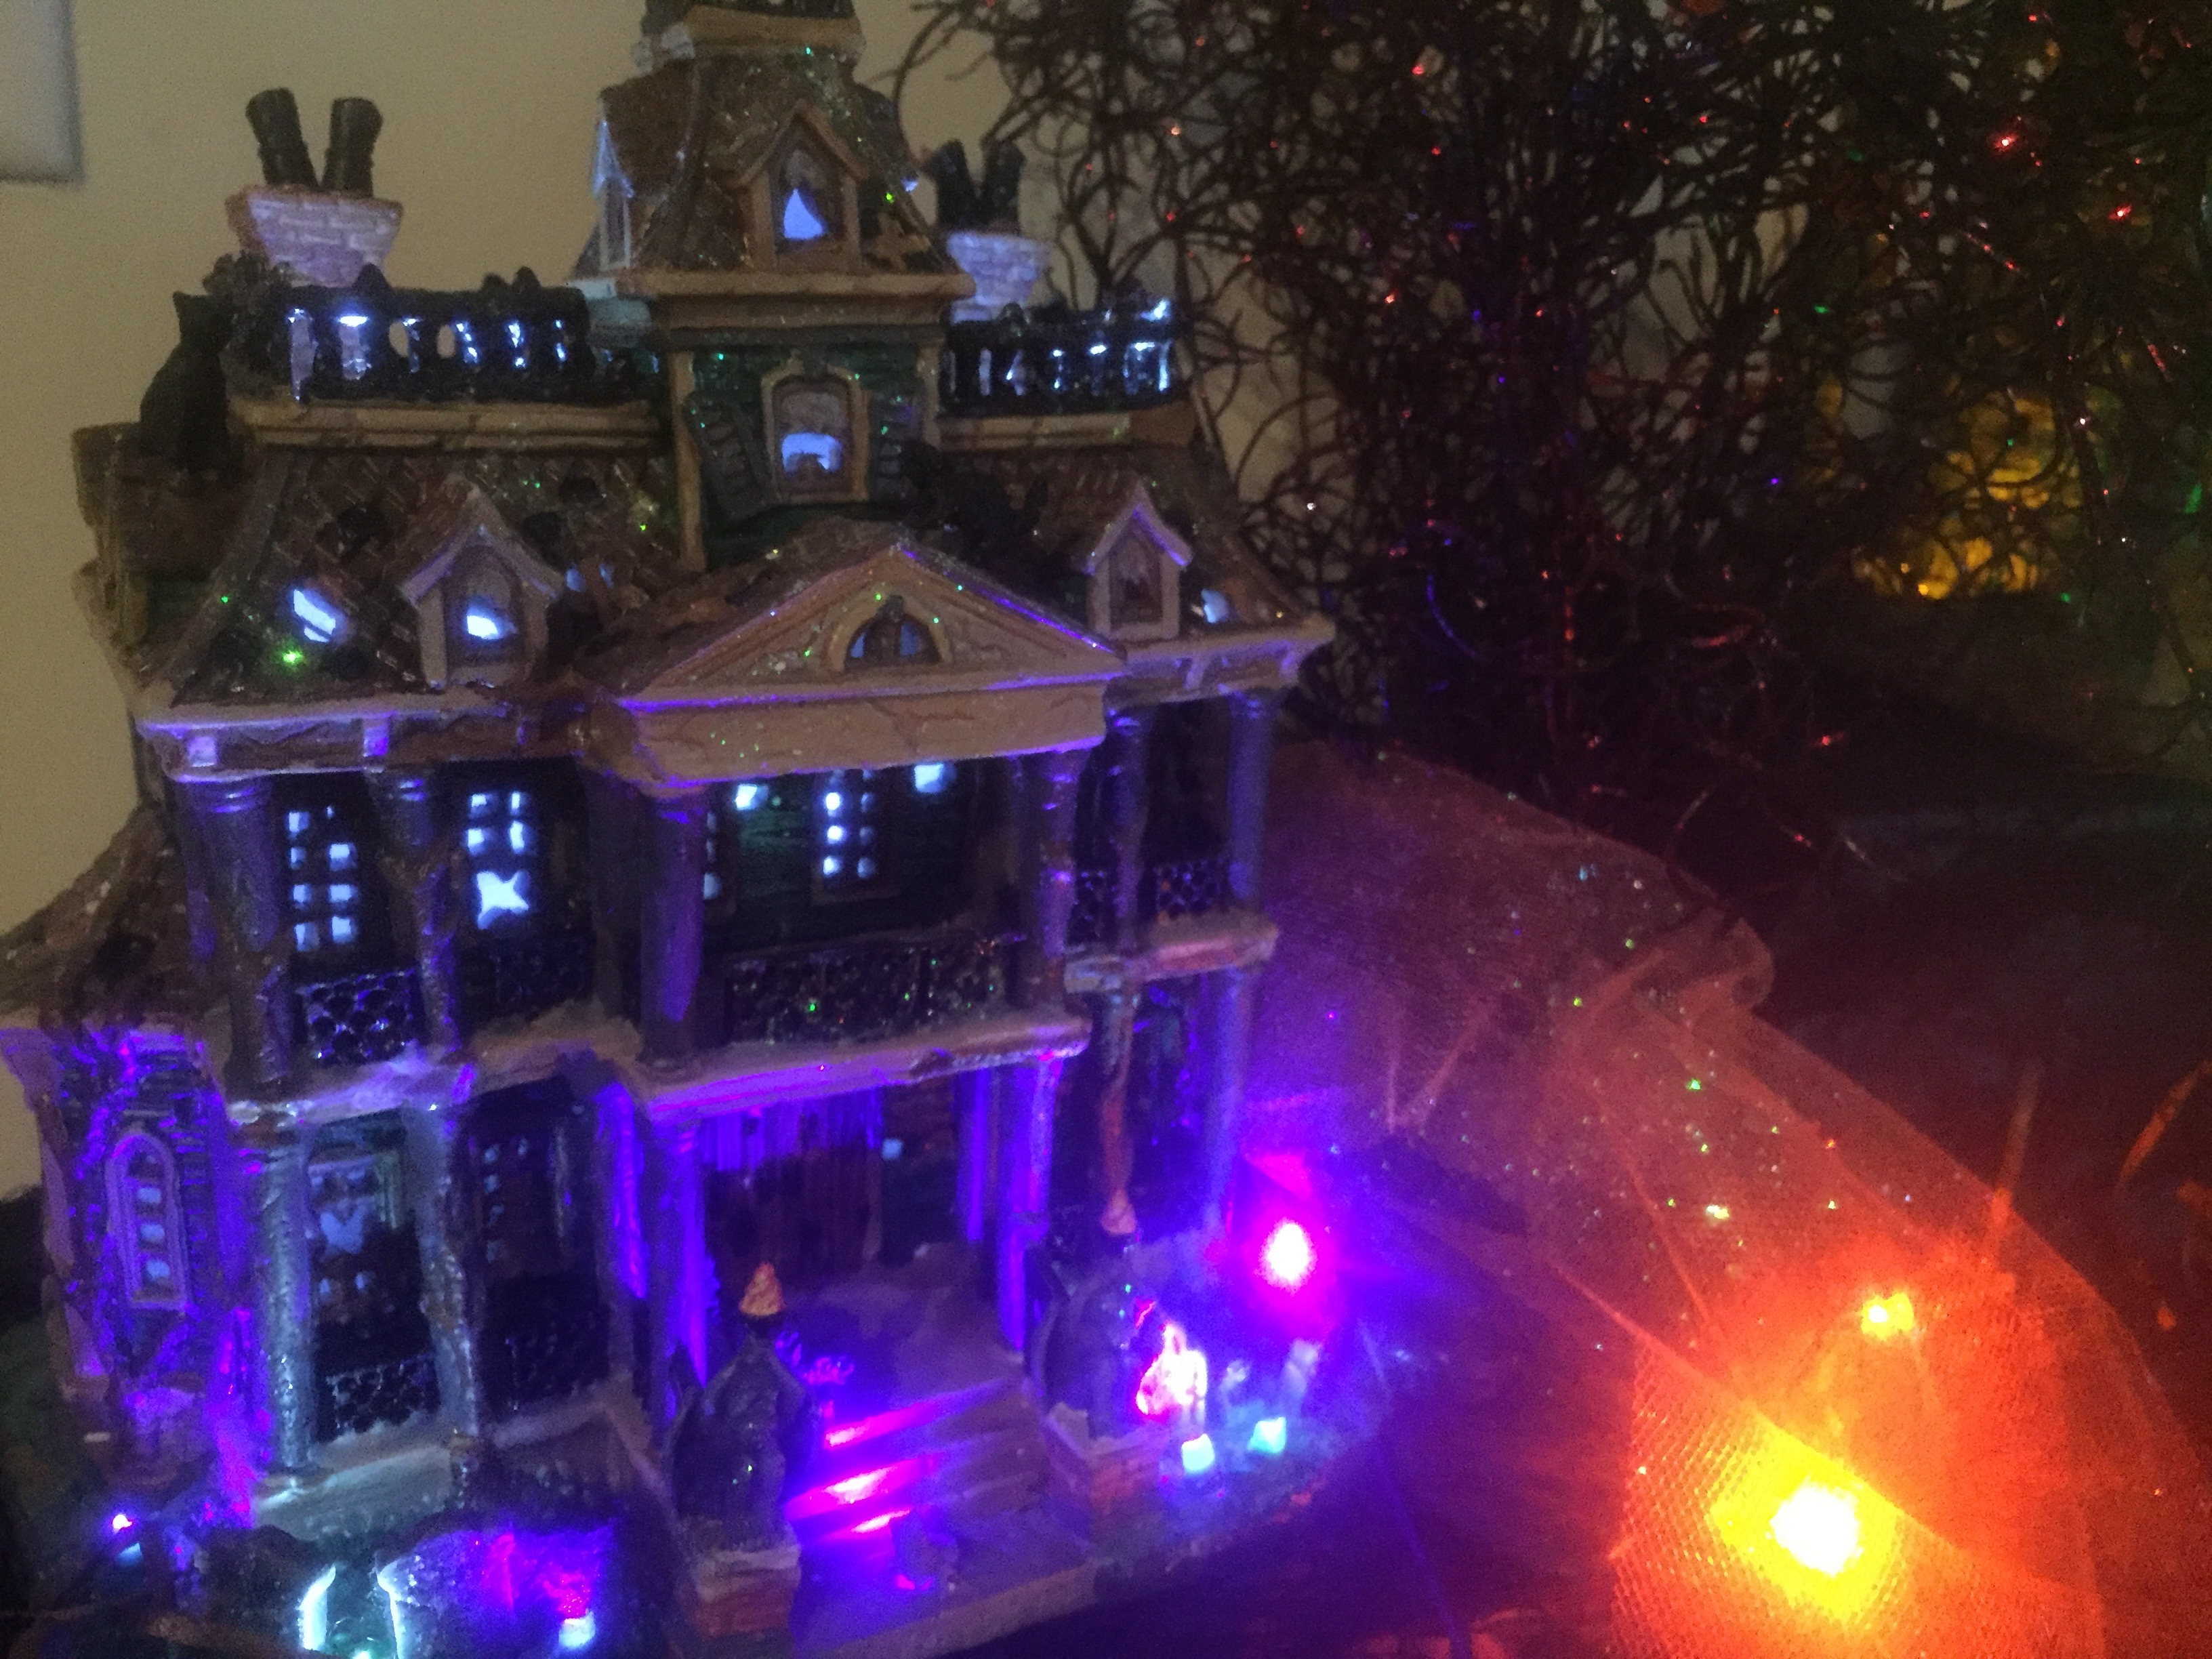 7 tips for a spooktacular diy halloween village – shannon o'neil